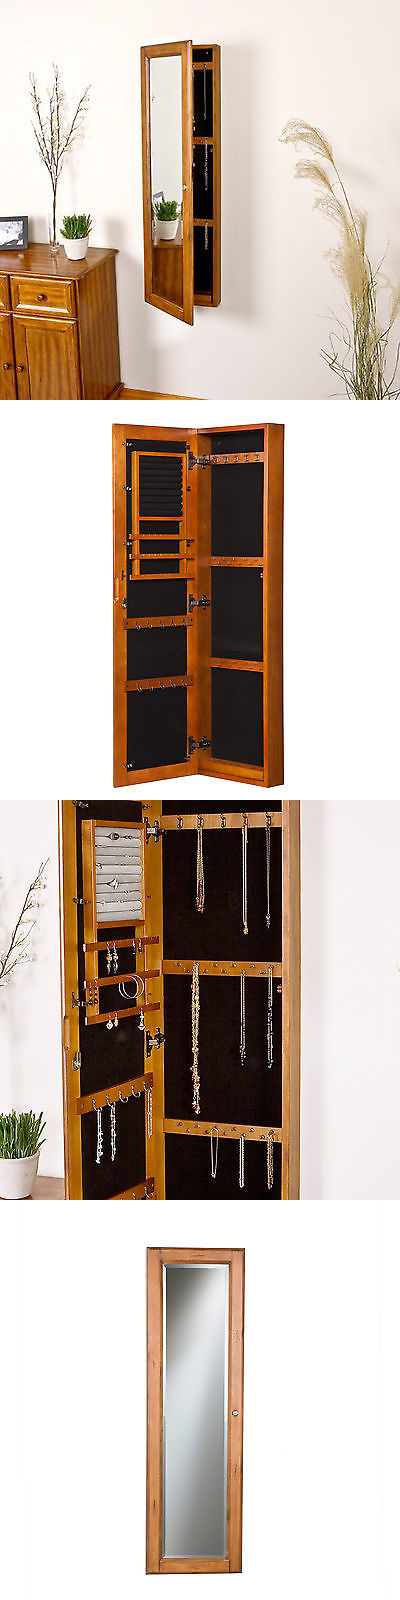 Delicieux Jewelry Boxes 3820: Wall Mount Mirror Jewelry Armoire Wood Cabinet Storage  Box Ring Organizer Oak